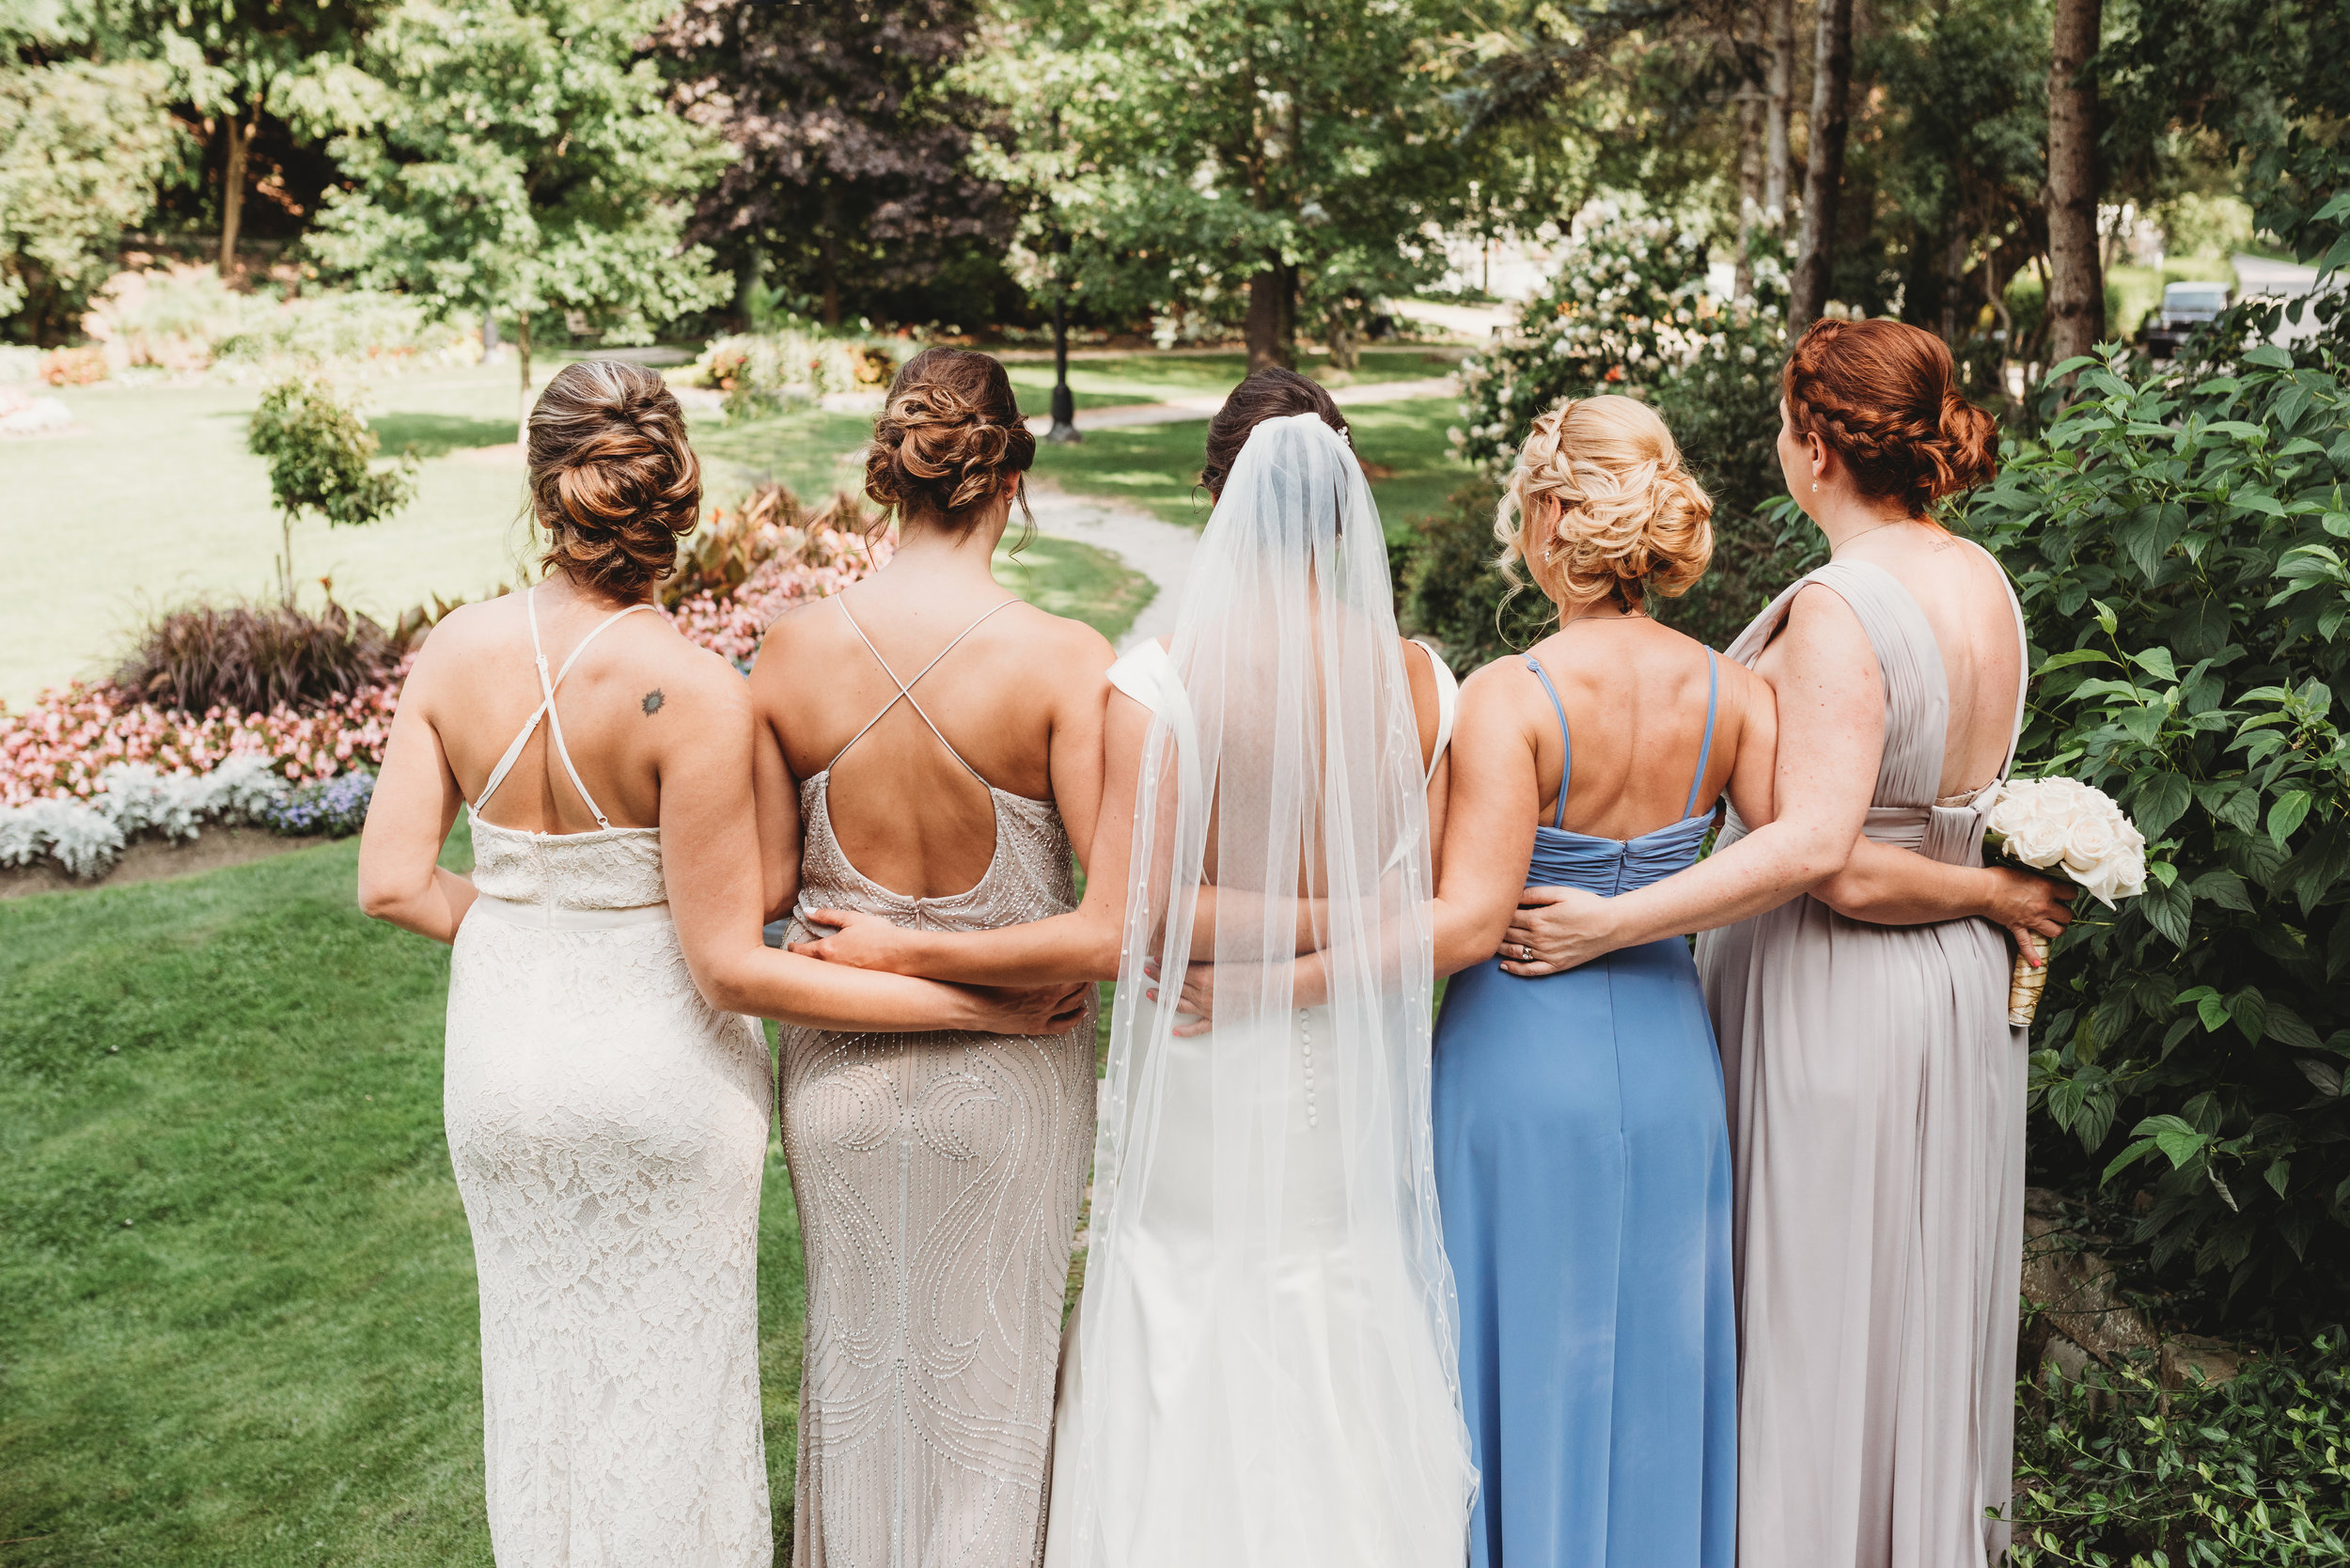 bride-and-bridesmaids-wedding-party-pictures-eglington-grand-wedding-by-willow-birch-photo-toronto-documentary-wedding-photographers.jpg